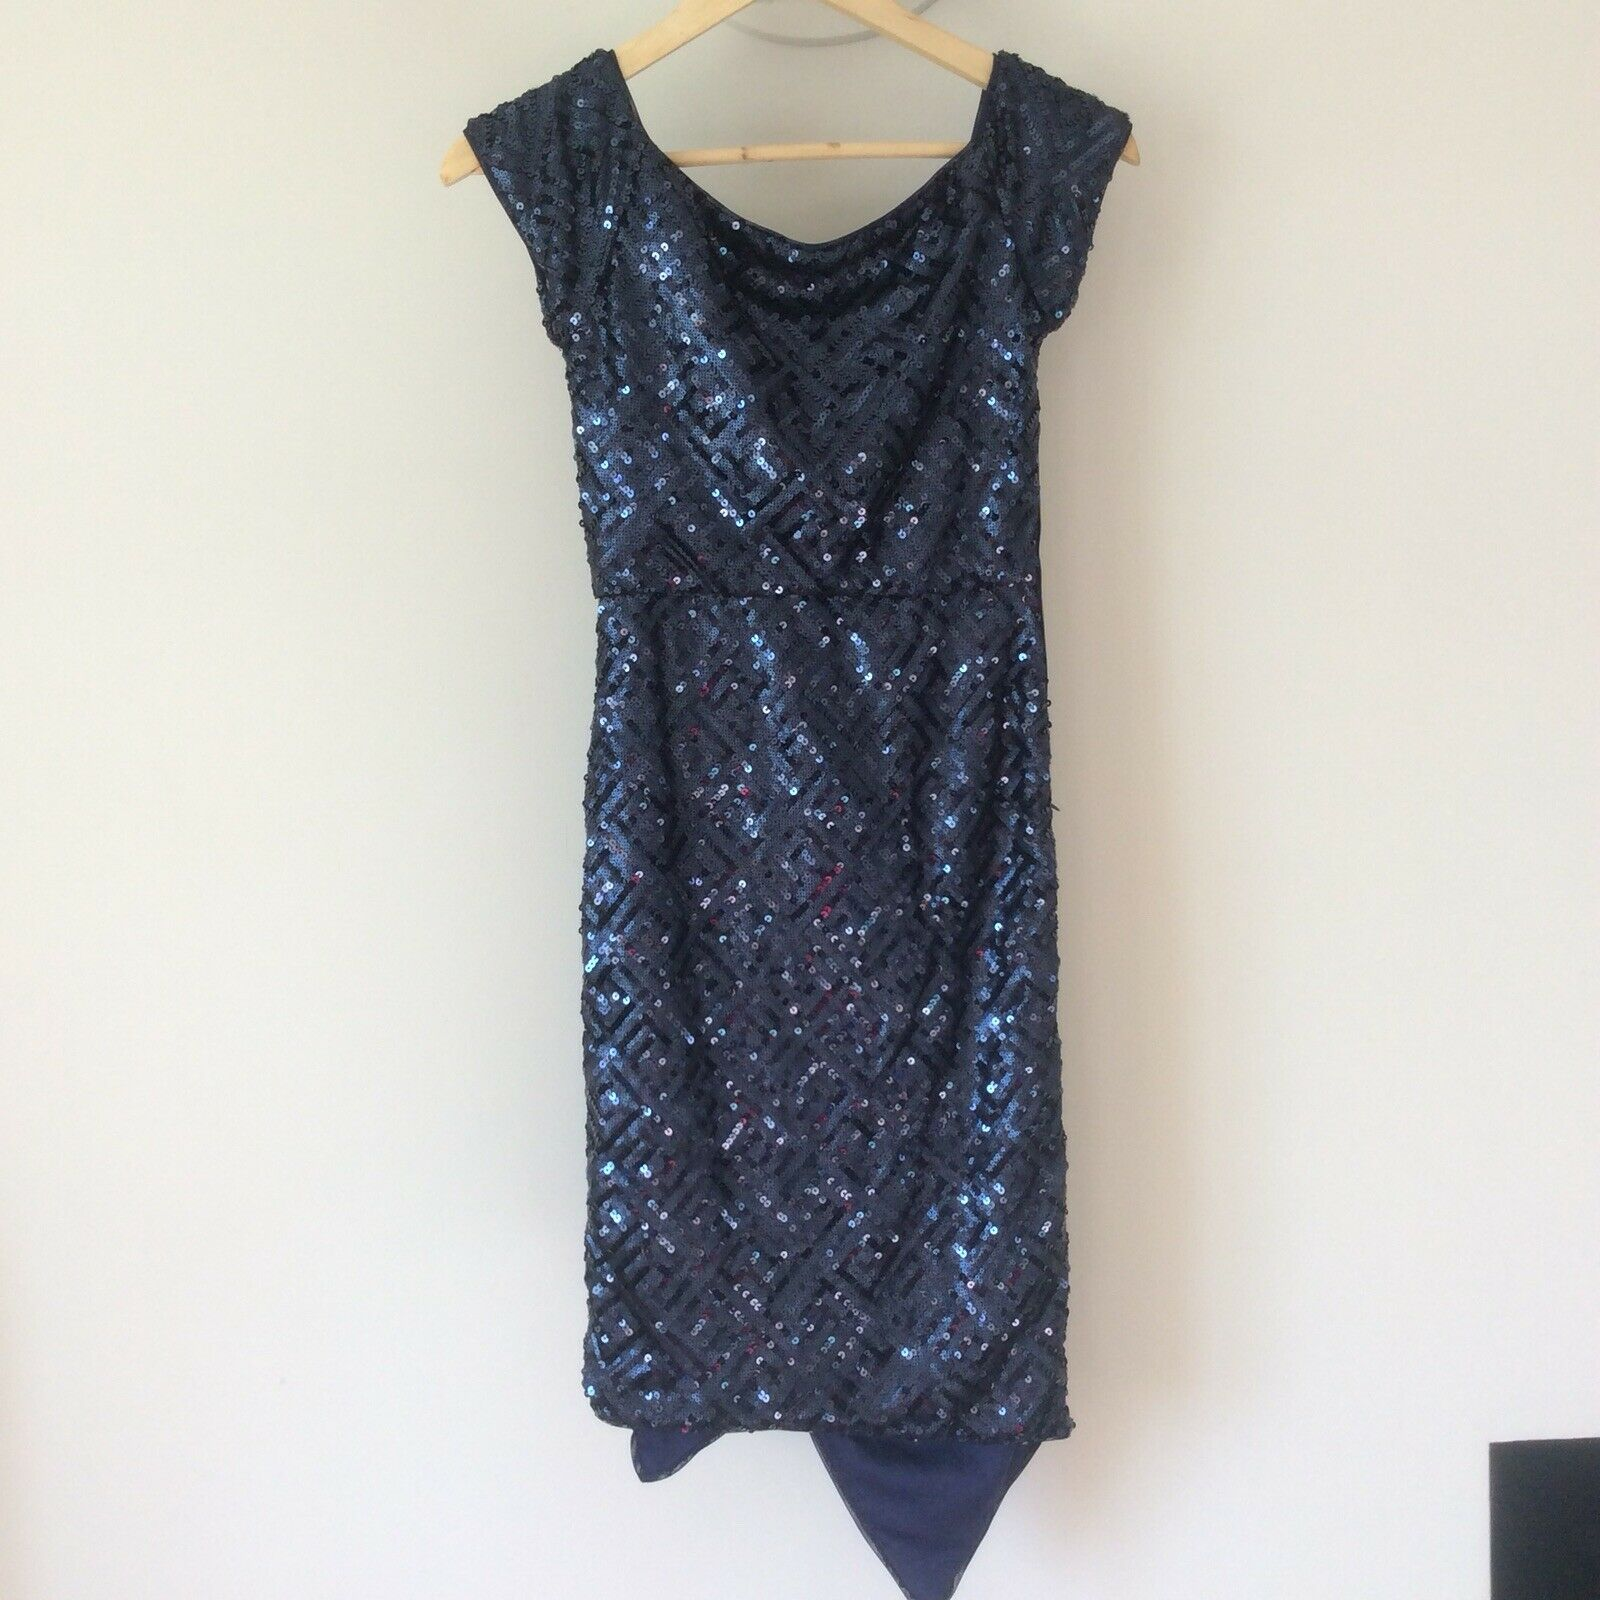 TFNC London Ladies Dress Size 8 Sequins bluee Party Occassion Prom